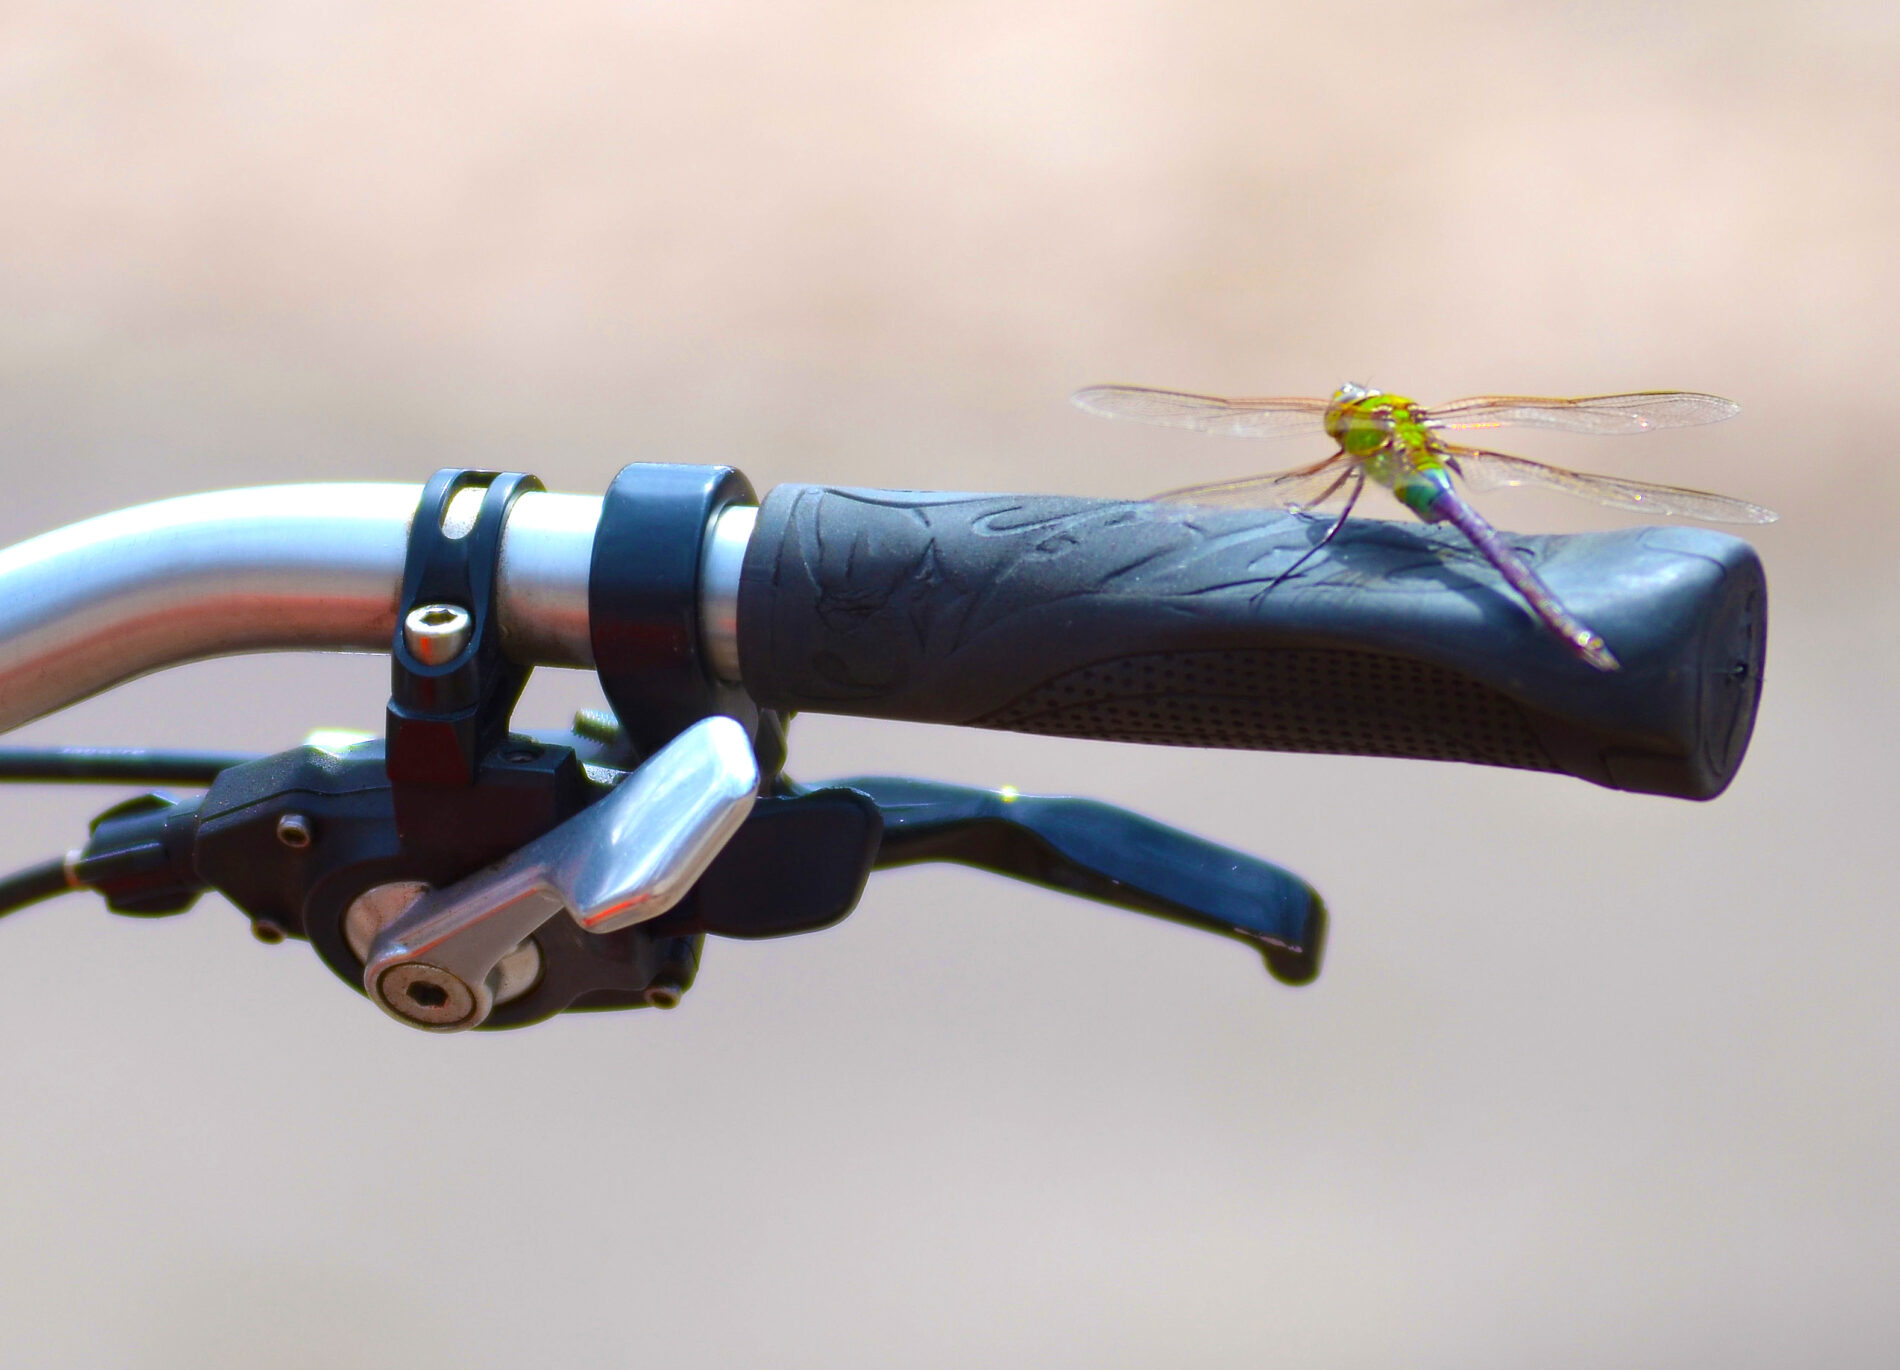 Dragonfly lands on handle bar of bicycle